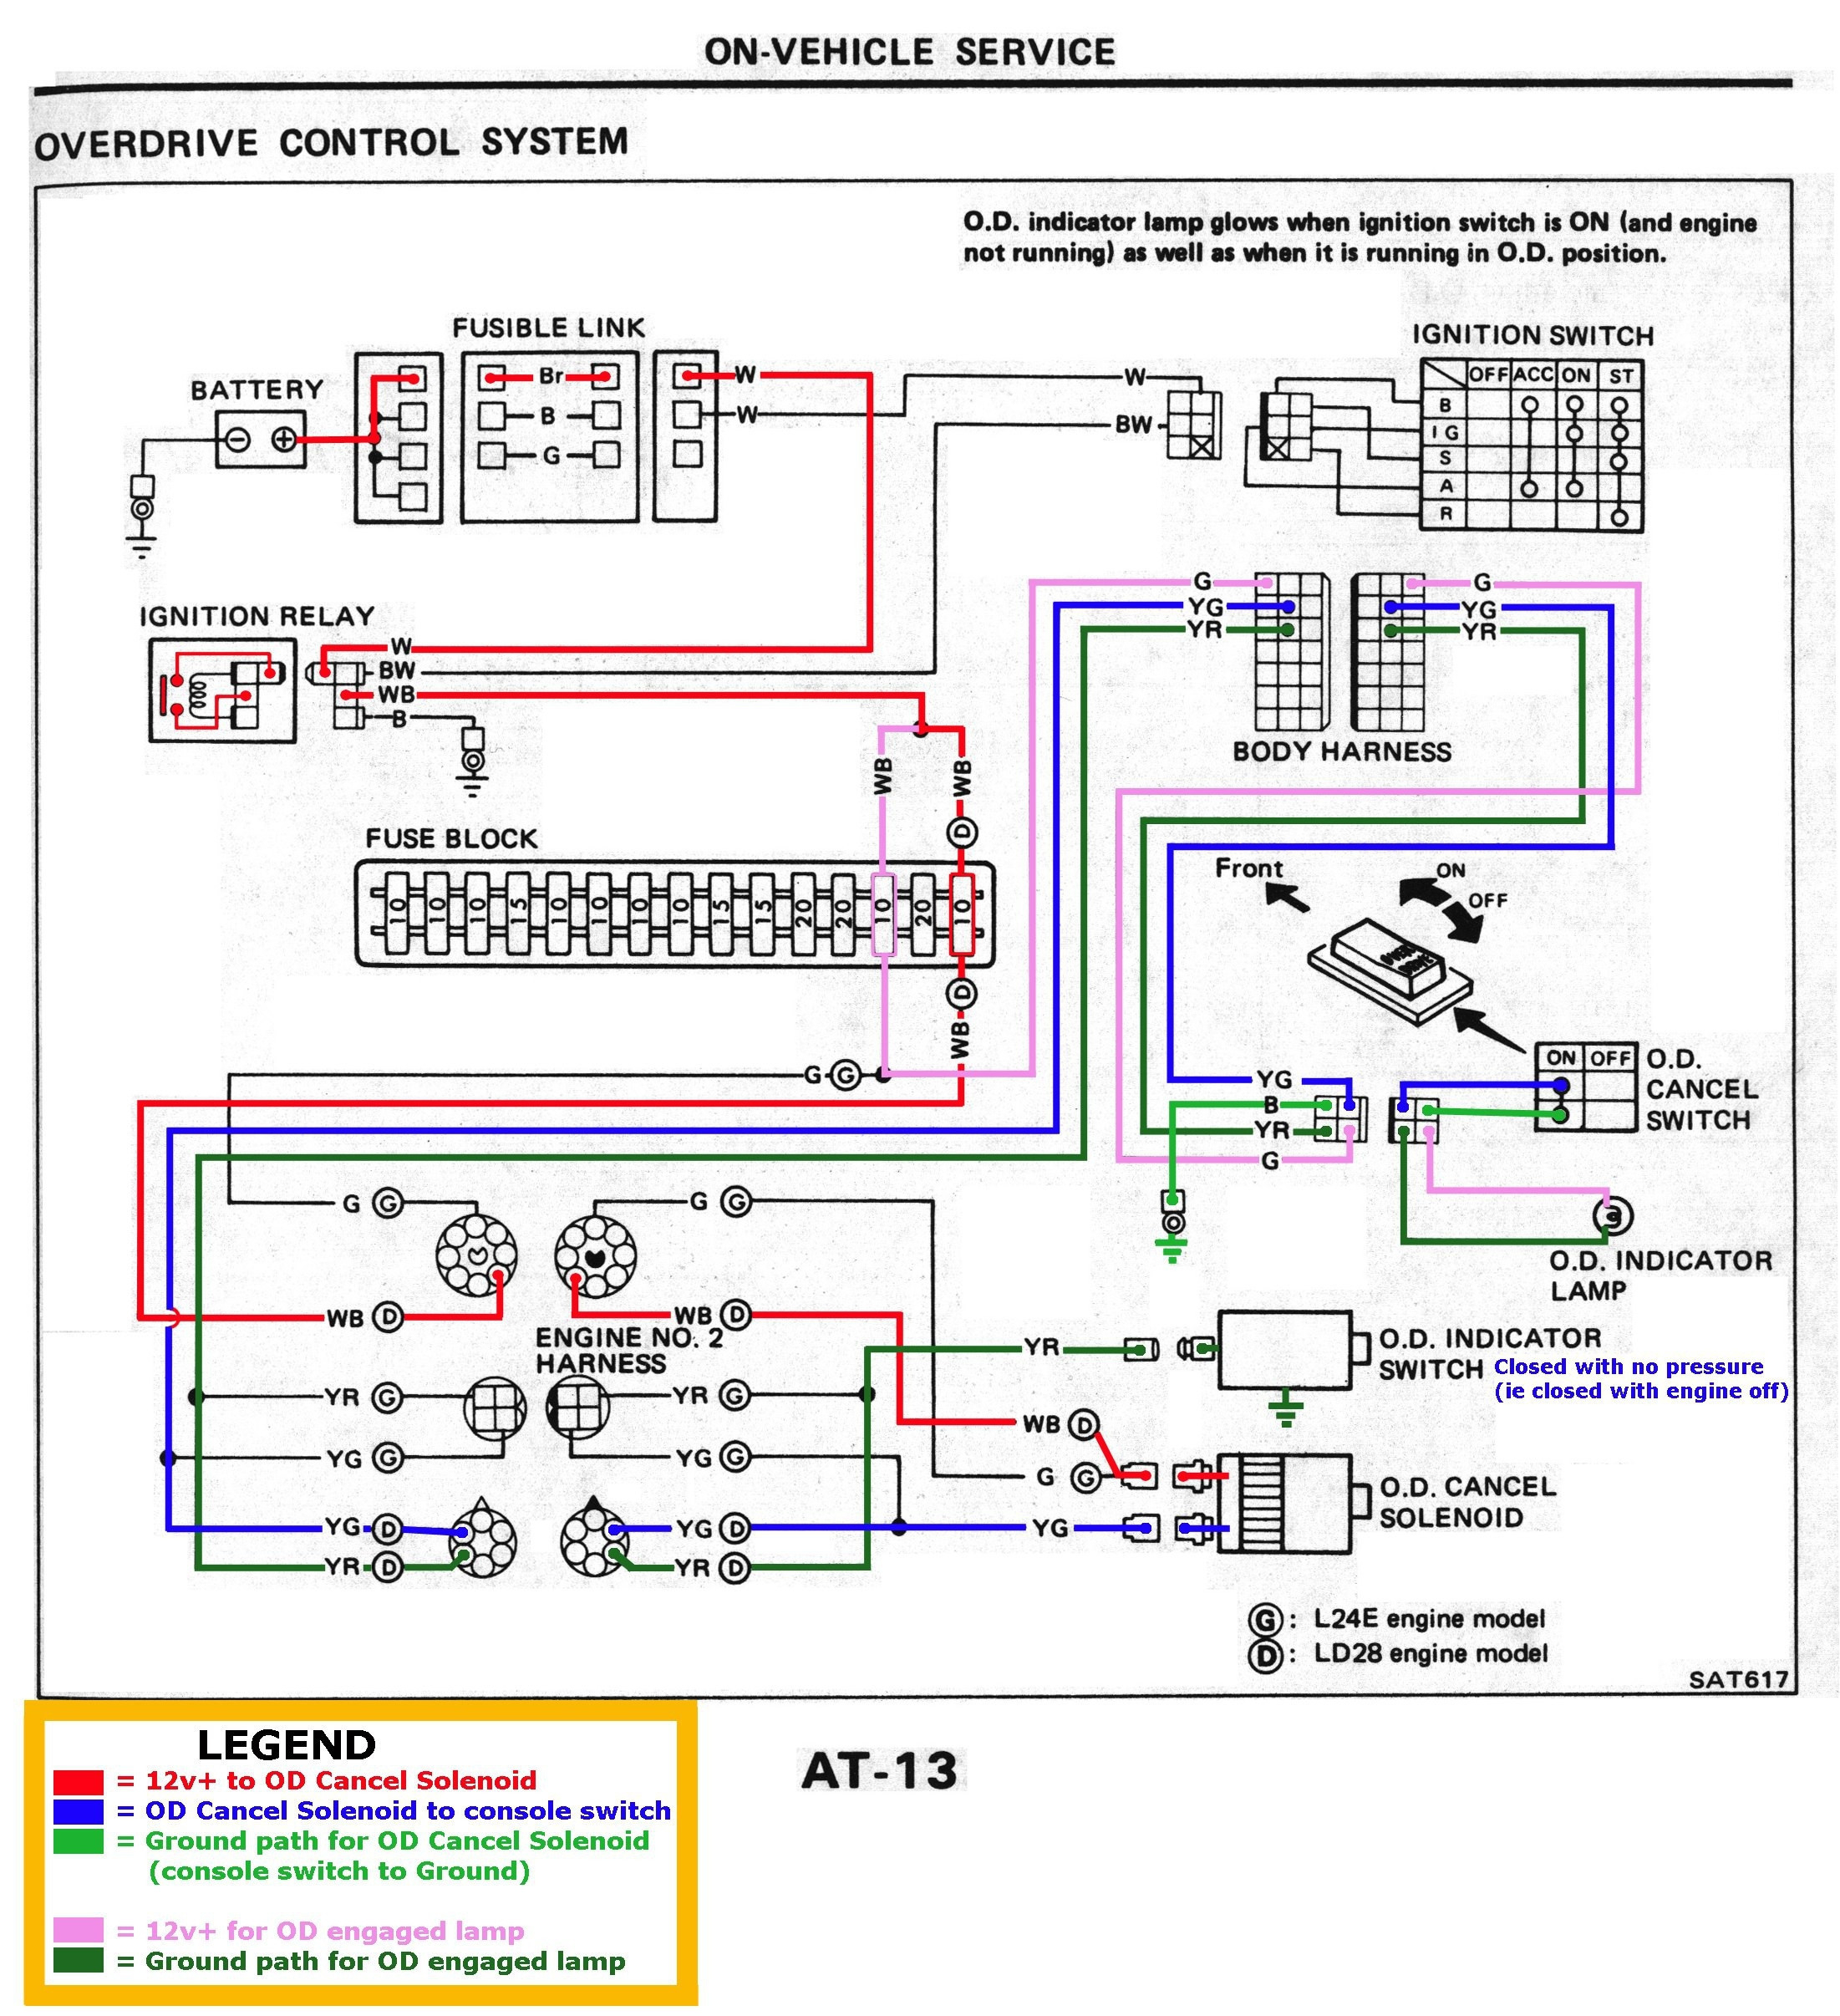 ford stereo wiring diagram Collection-Wiring Diagram for Mitsubishi Mini Split Inspirationa Wiring Diagram Ac Split Mitsubishi Fresh Wiring Diagram Split 12-q